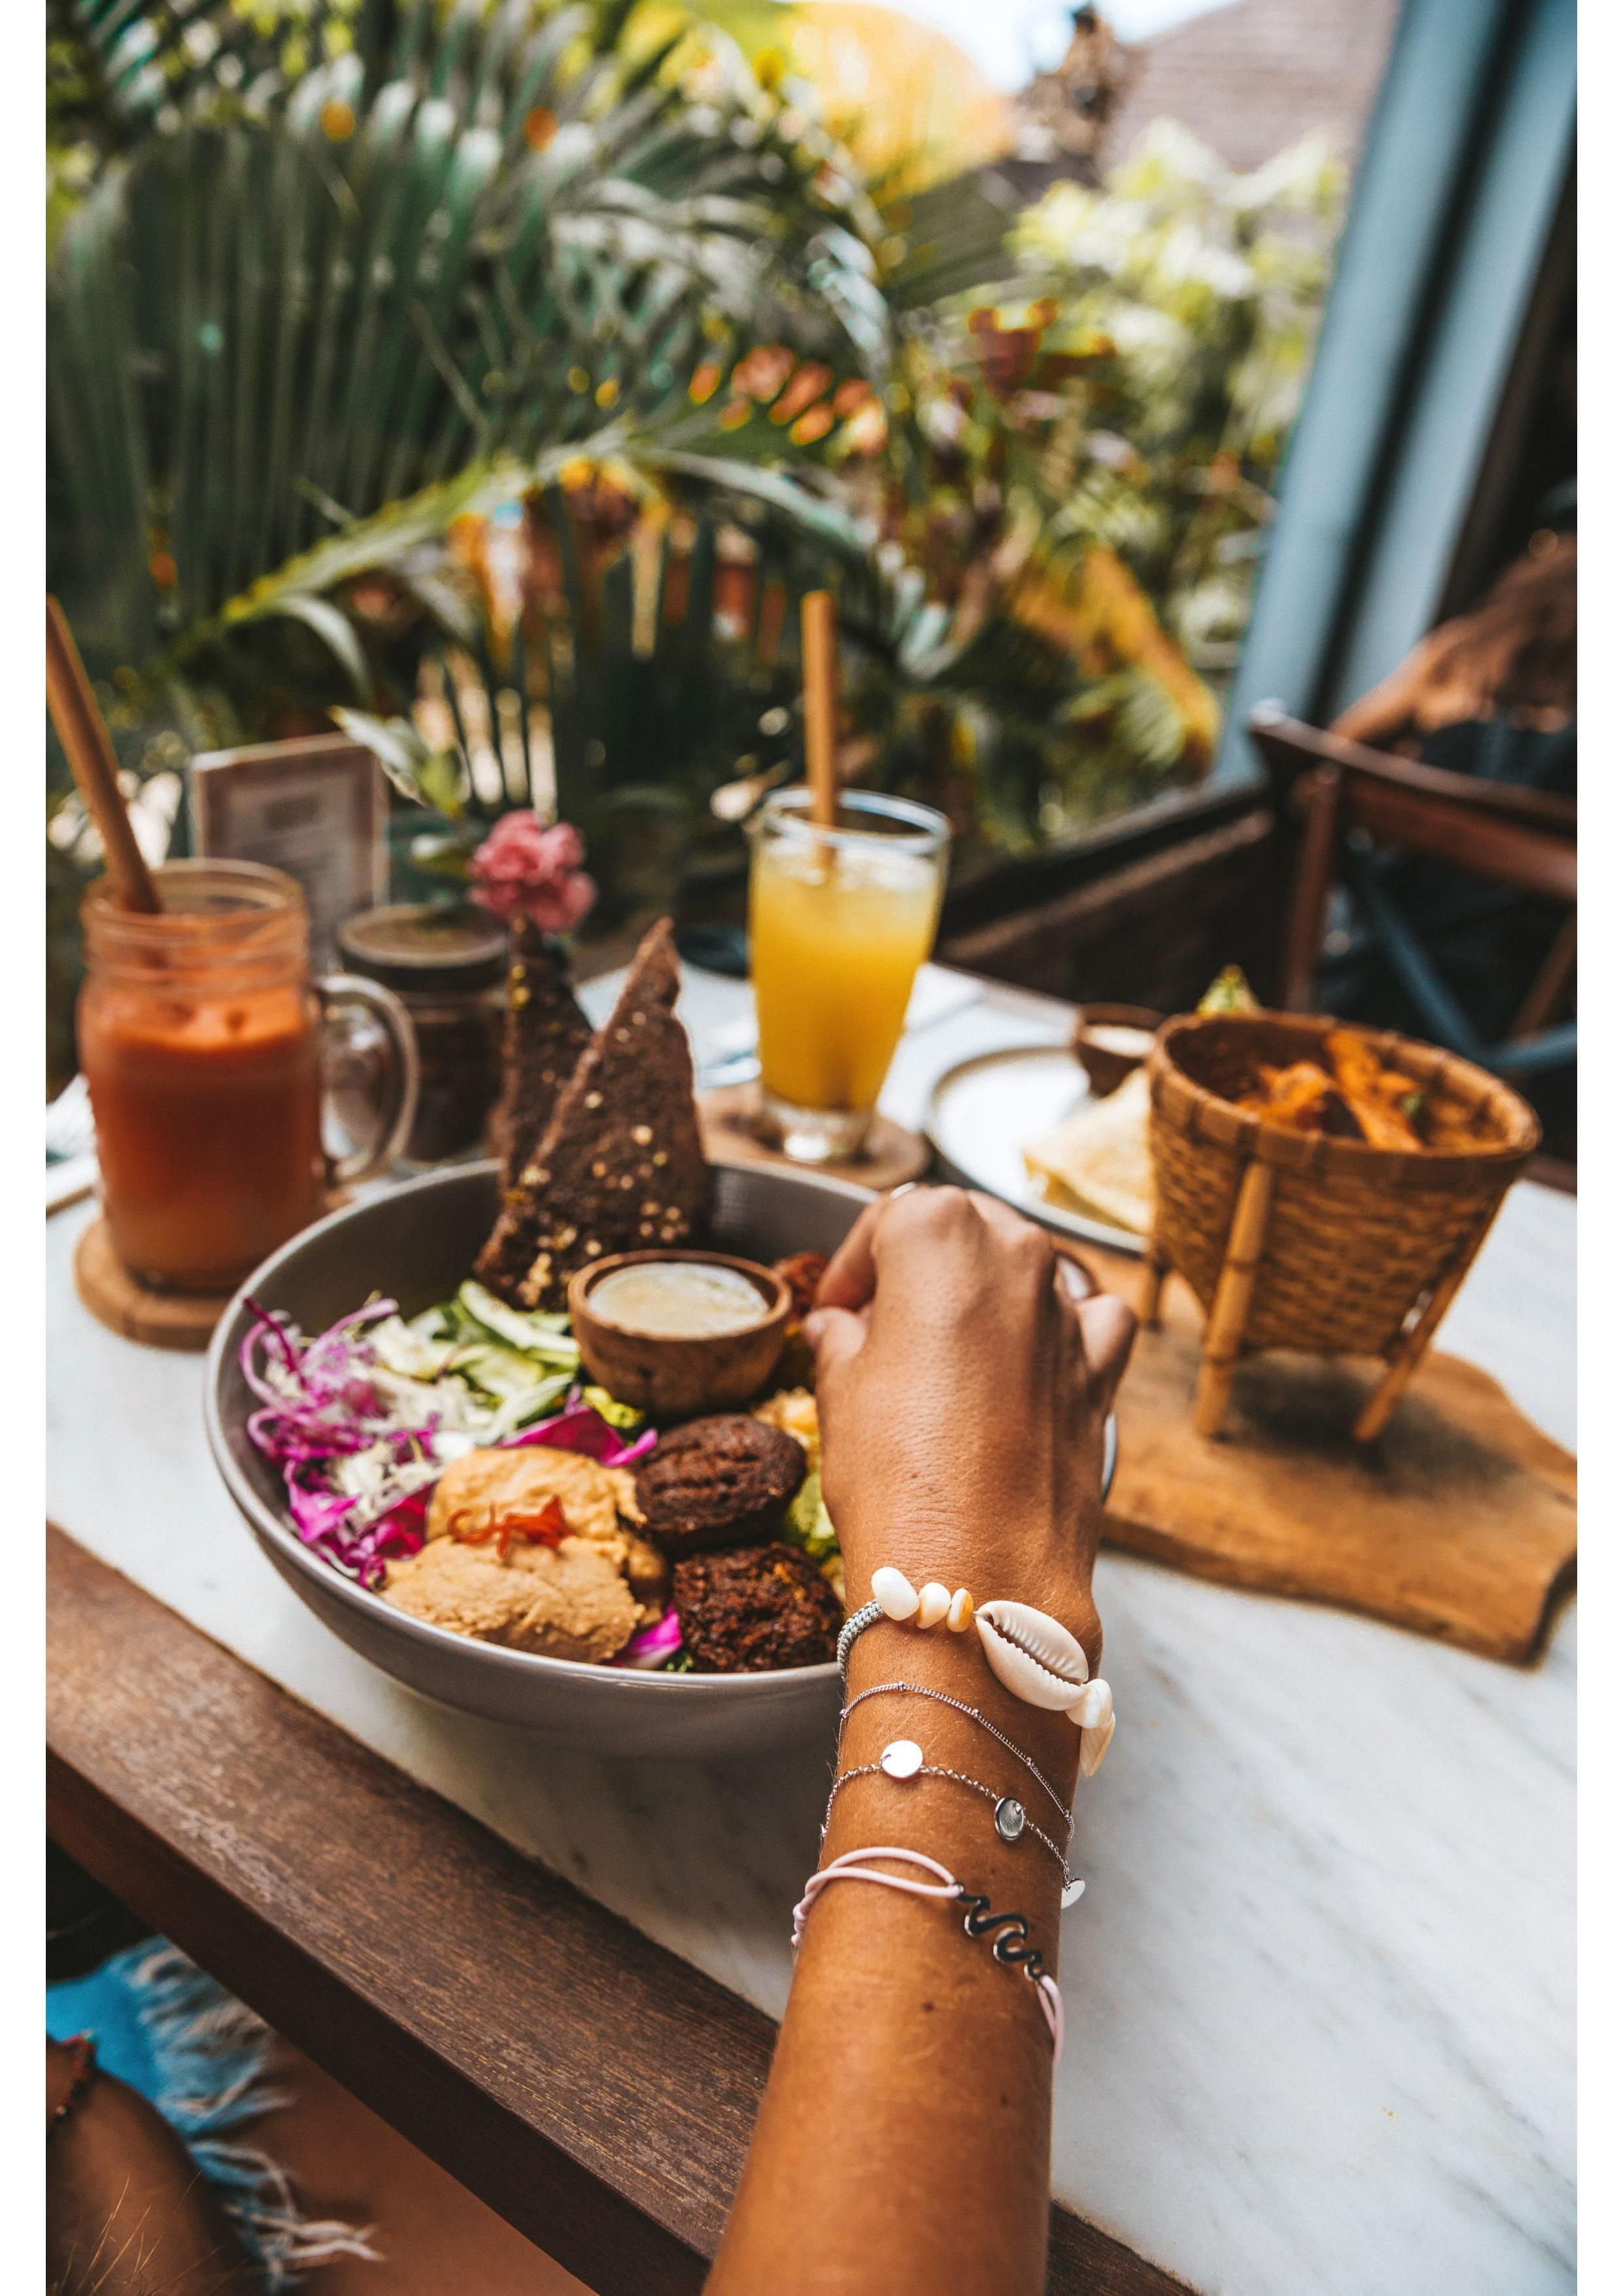 A Good Bowl A Day Keeps The Doctor Away Bowls Purelei Purebowls Foodheaven Hawaiianbowls Food Recipes From Heaven Food Inspiration